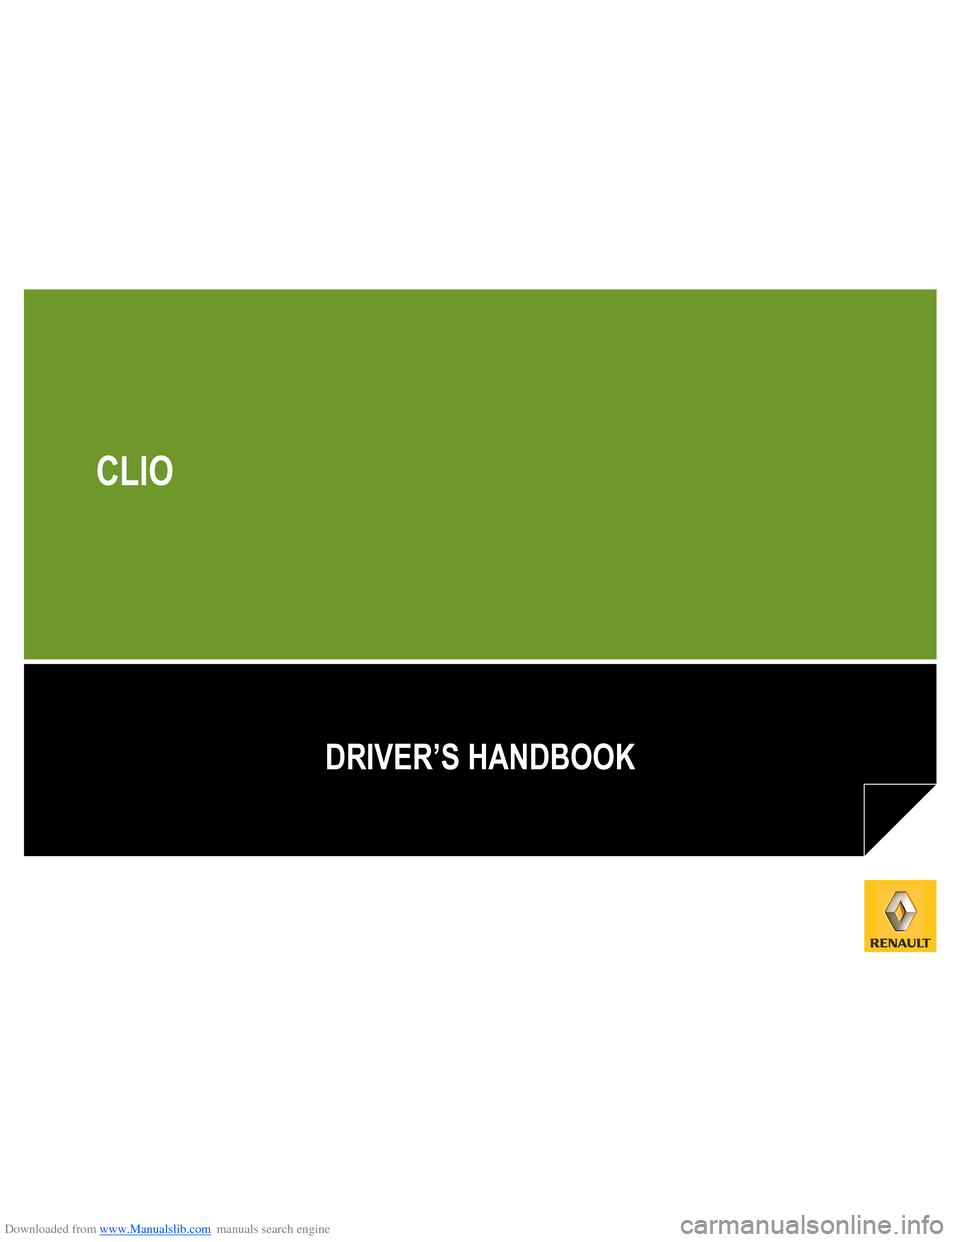 RENAULT CLIO 2012 X85 / 3.G Owners Manual, Page 1